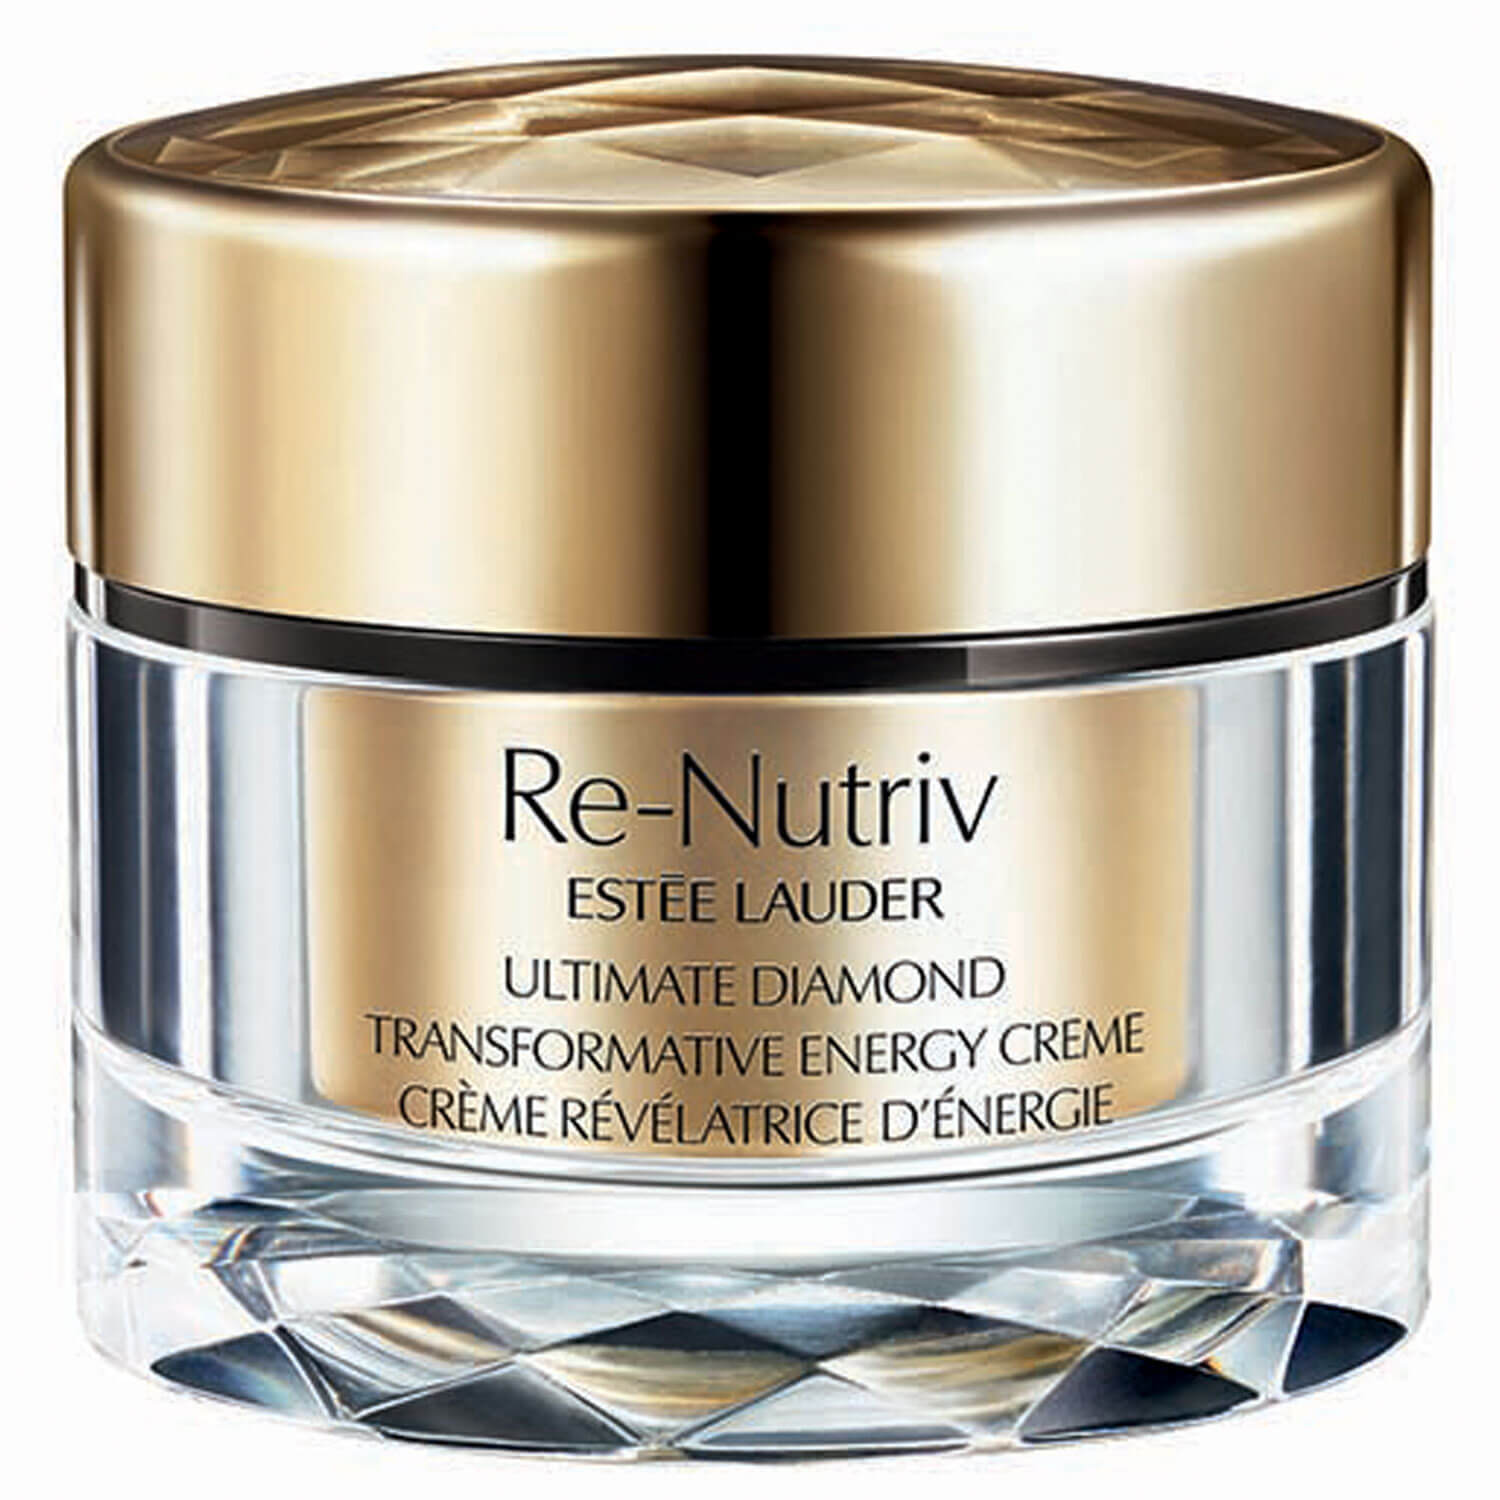 Re-Nutriv - Ultimate Diamond Transformative Energy Creme